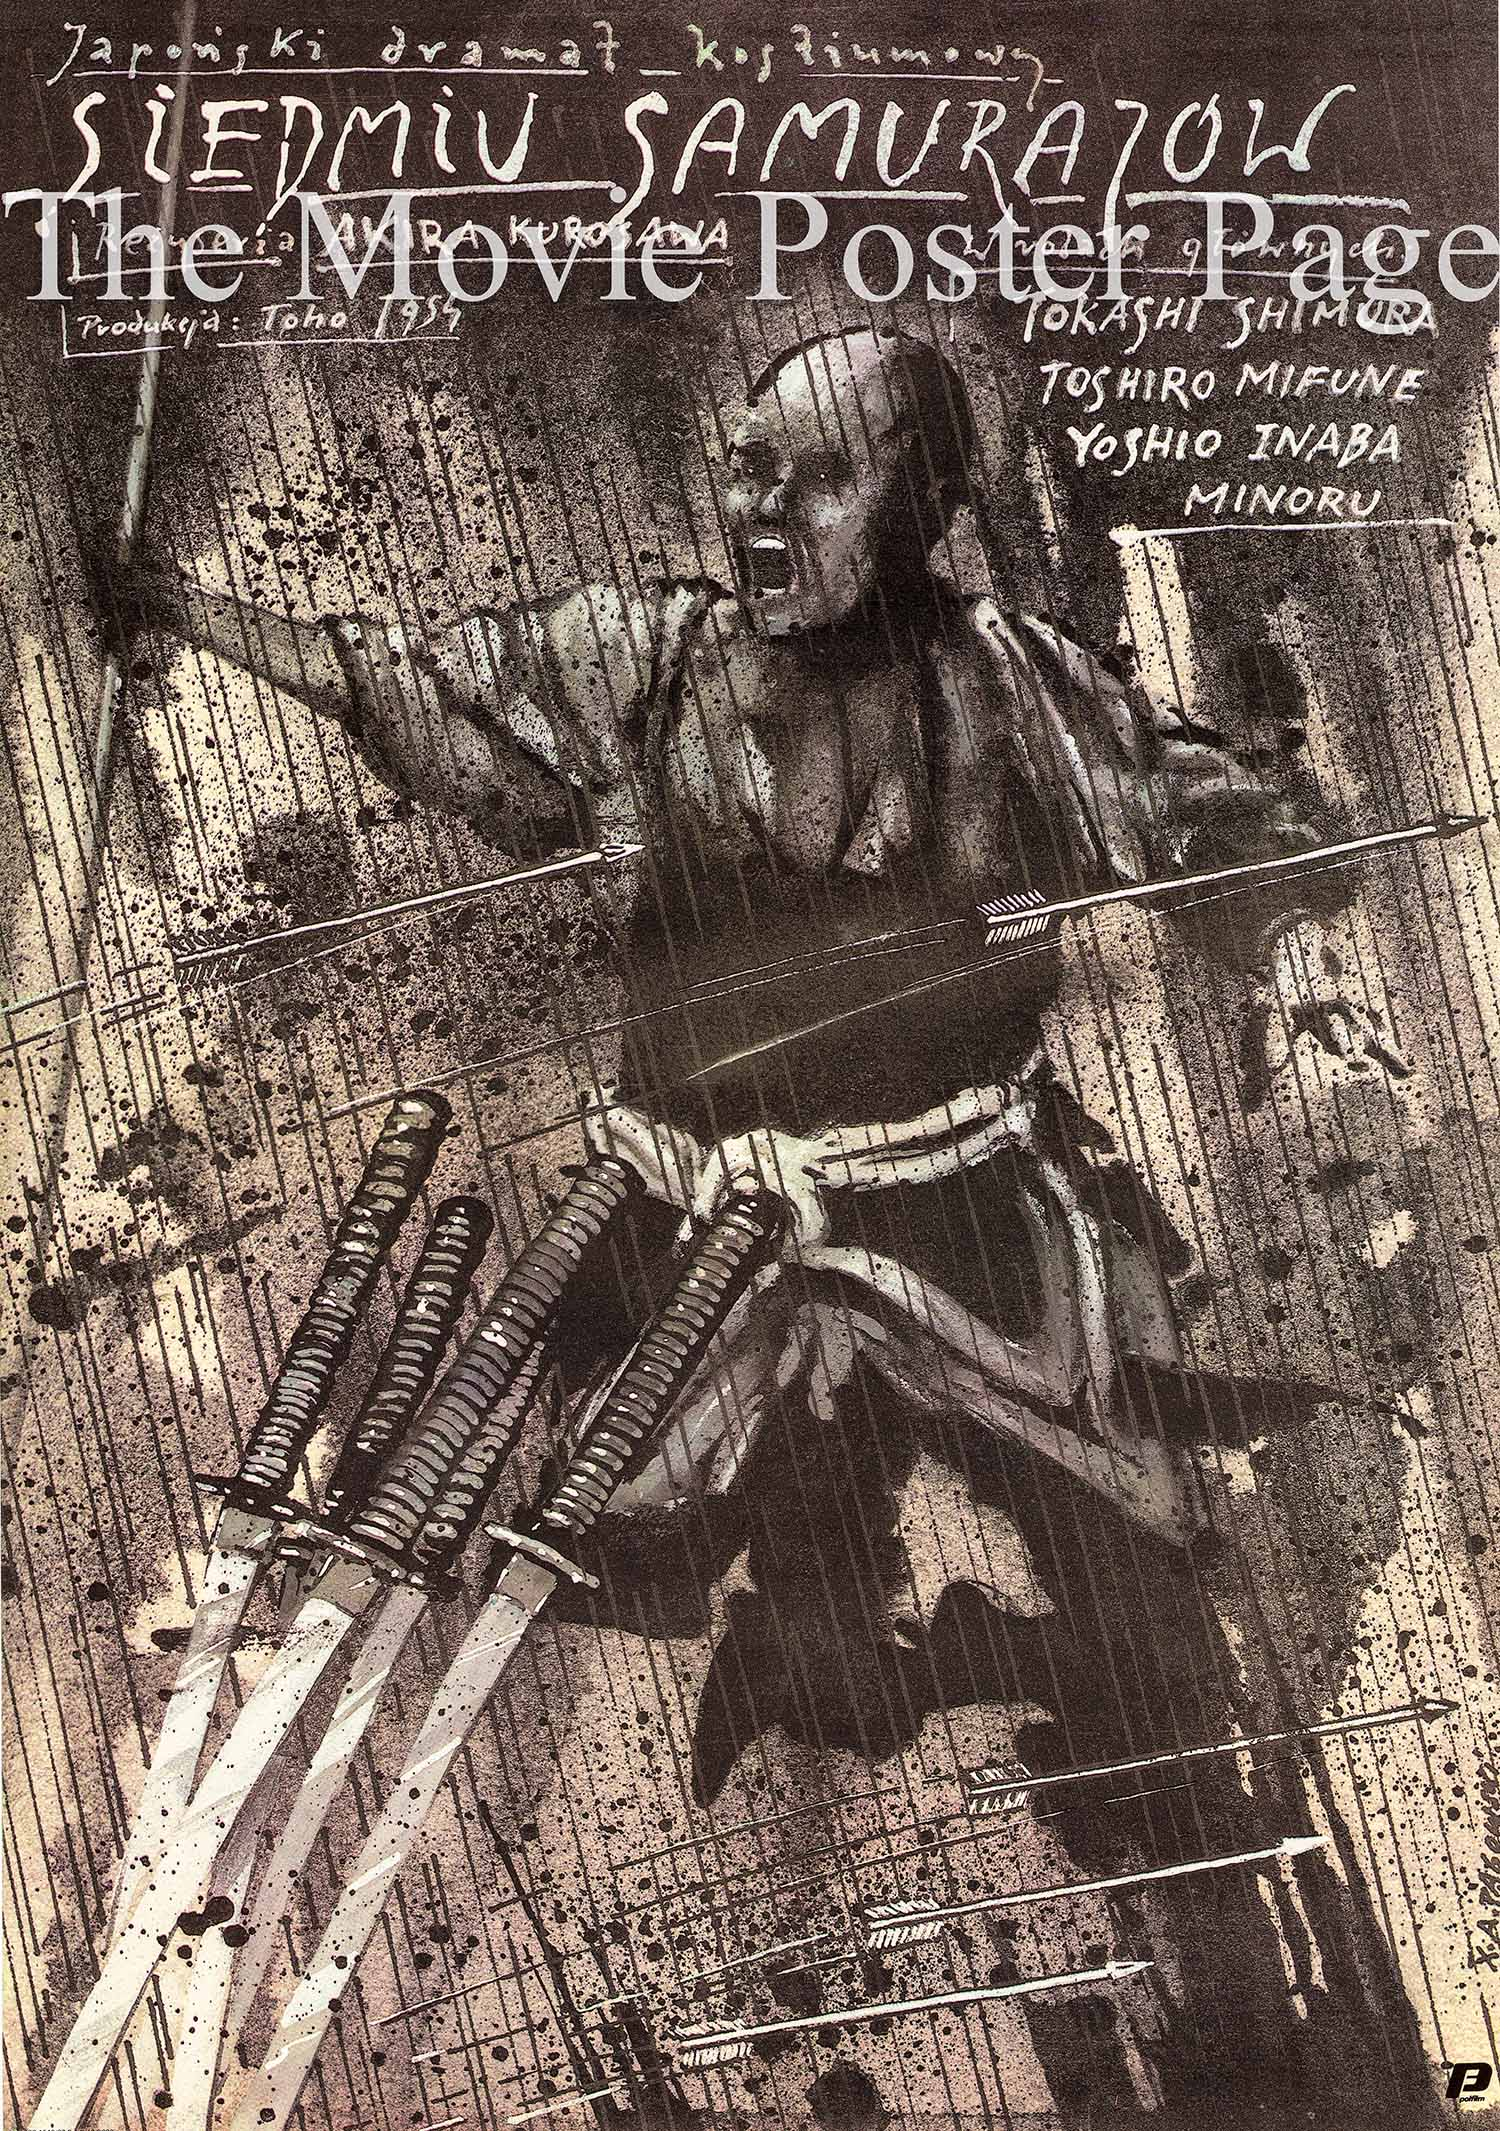 Pictured is a Polish poster designed by Andrzej Pagowski to promote a 1987 rereleae of the 1954 Akira Kurosawa film Seven Samurai starring Toshiro Mifune.